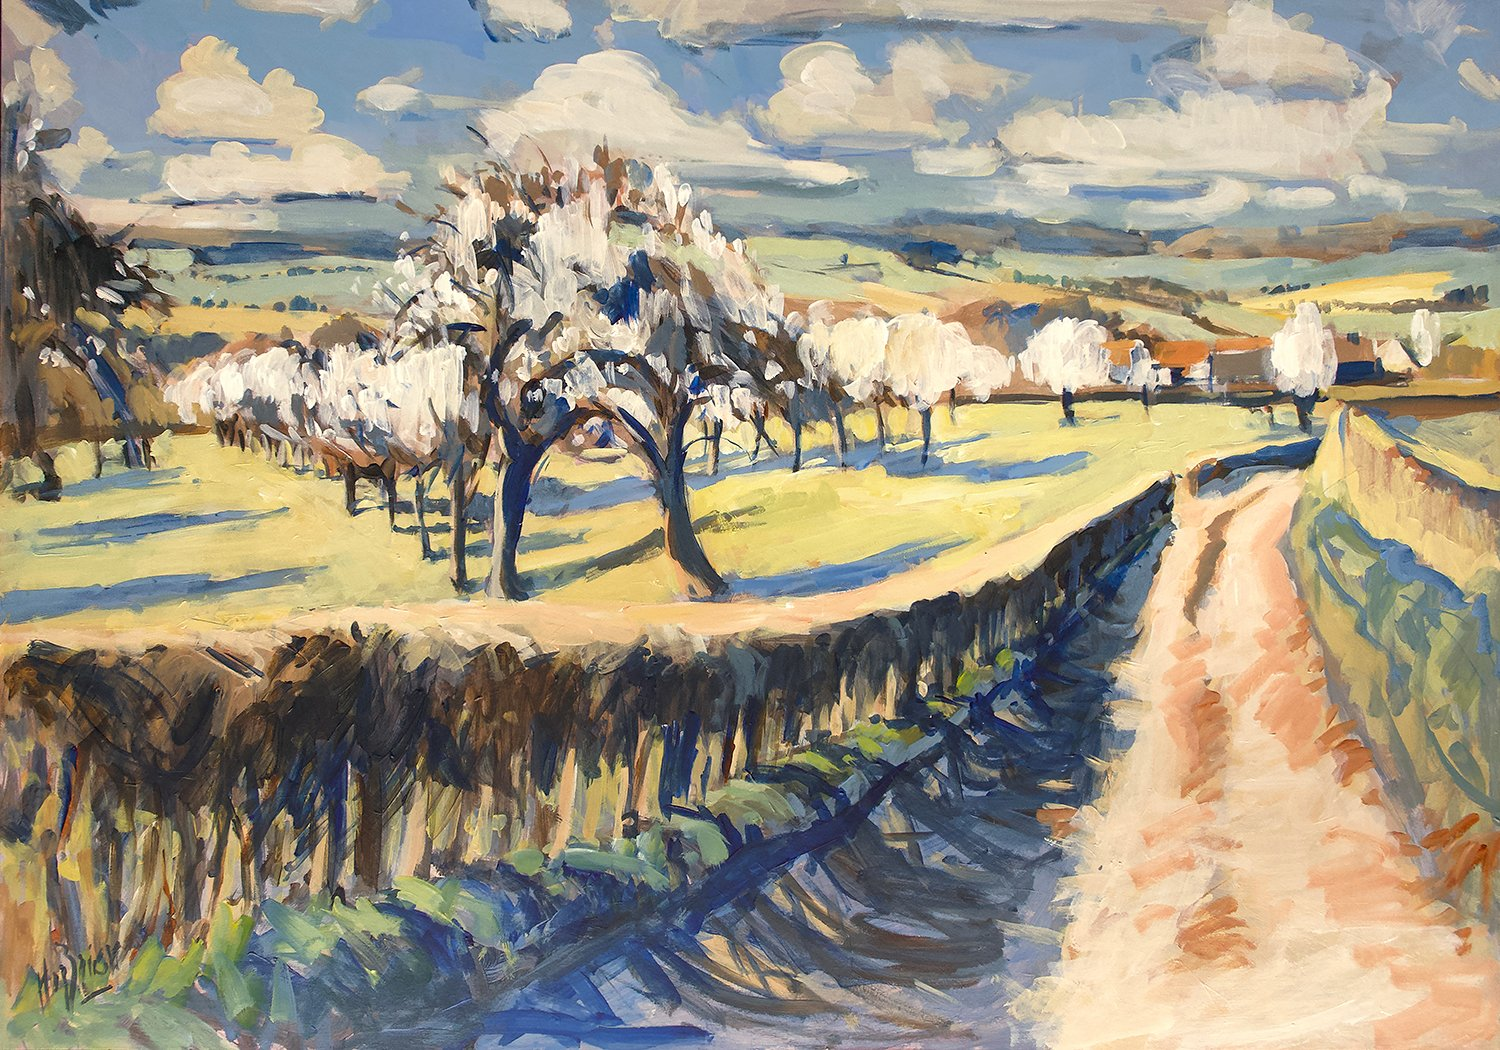 The Bellet Orchard in Epen by Nop Briex